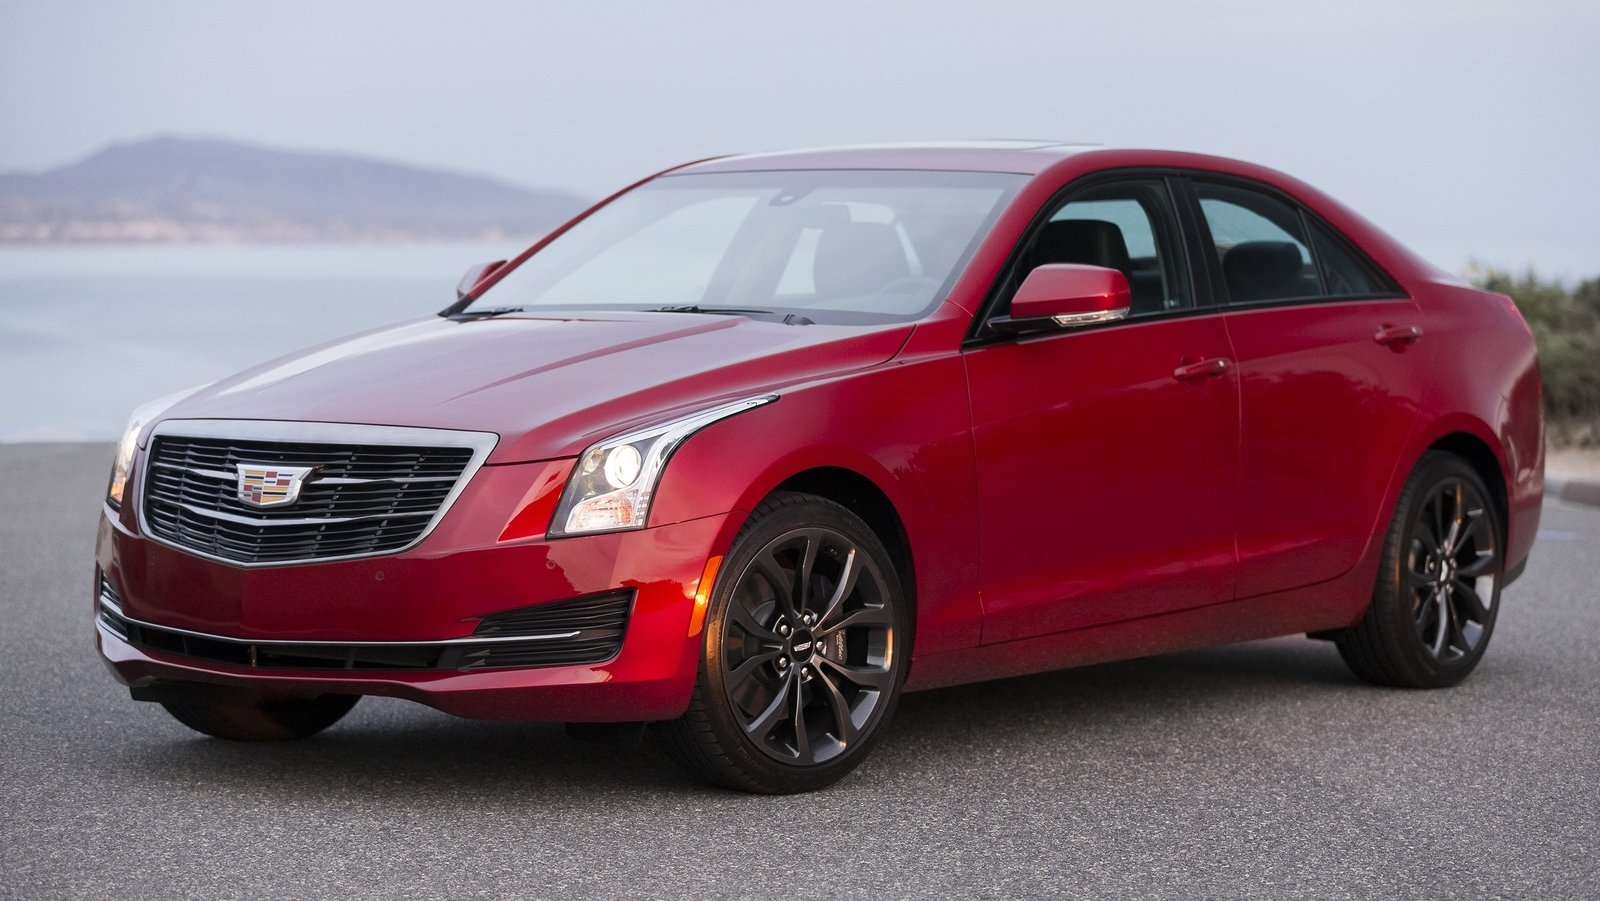 2016 Cadillac ATS Black Chrome Package | Top Speed